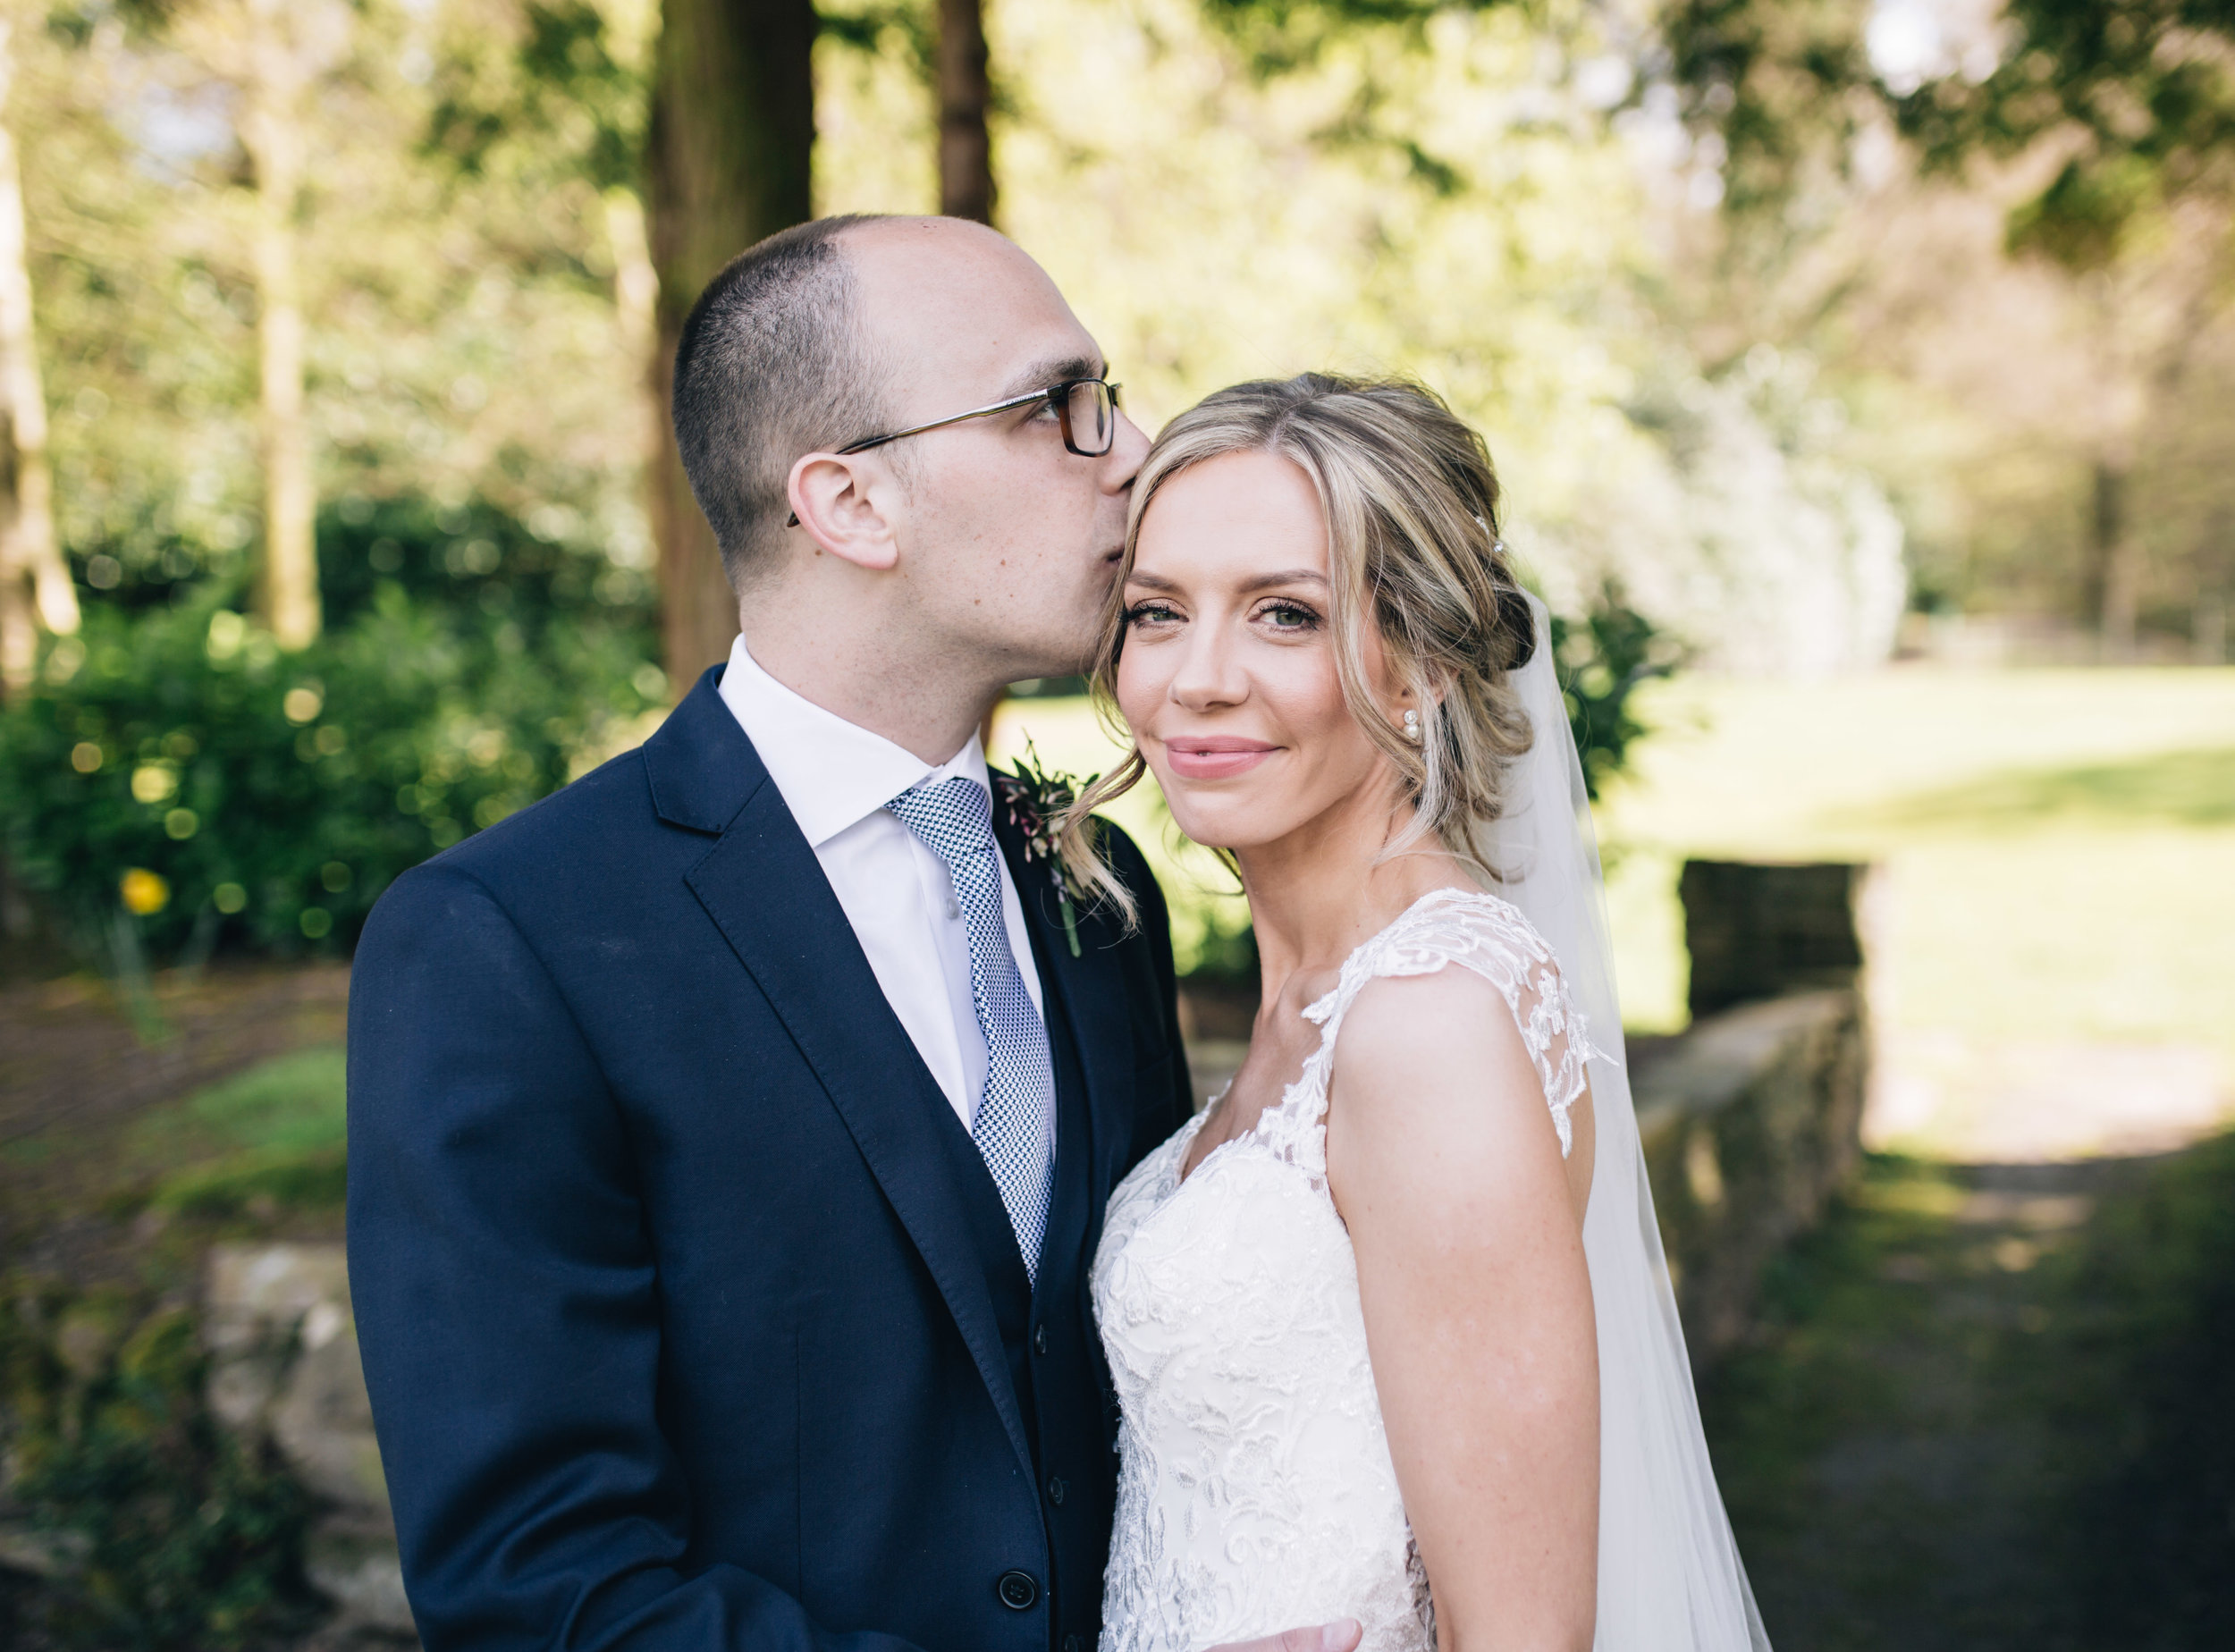 relaxed wedding pictures Cheshire - bride and groom at Mottram hall